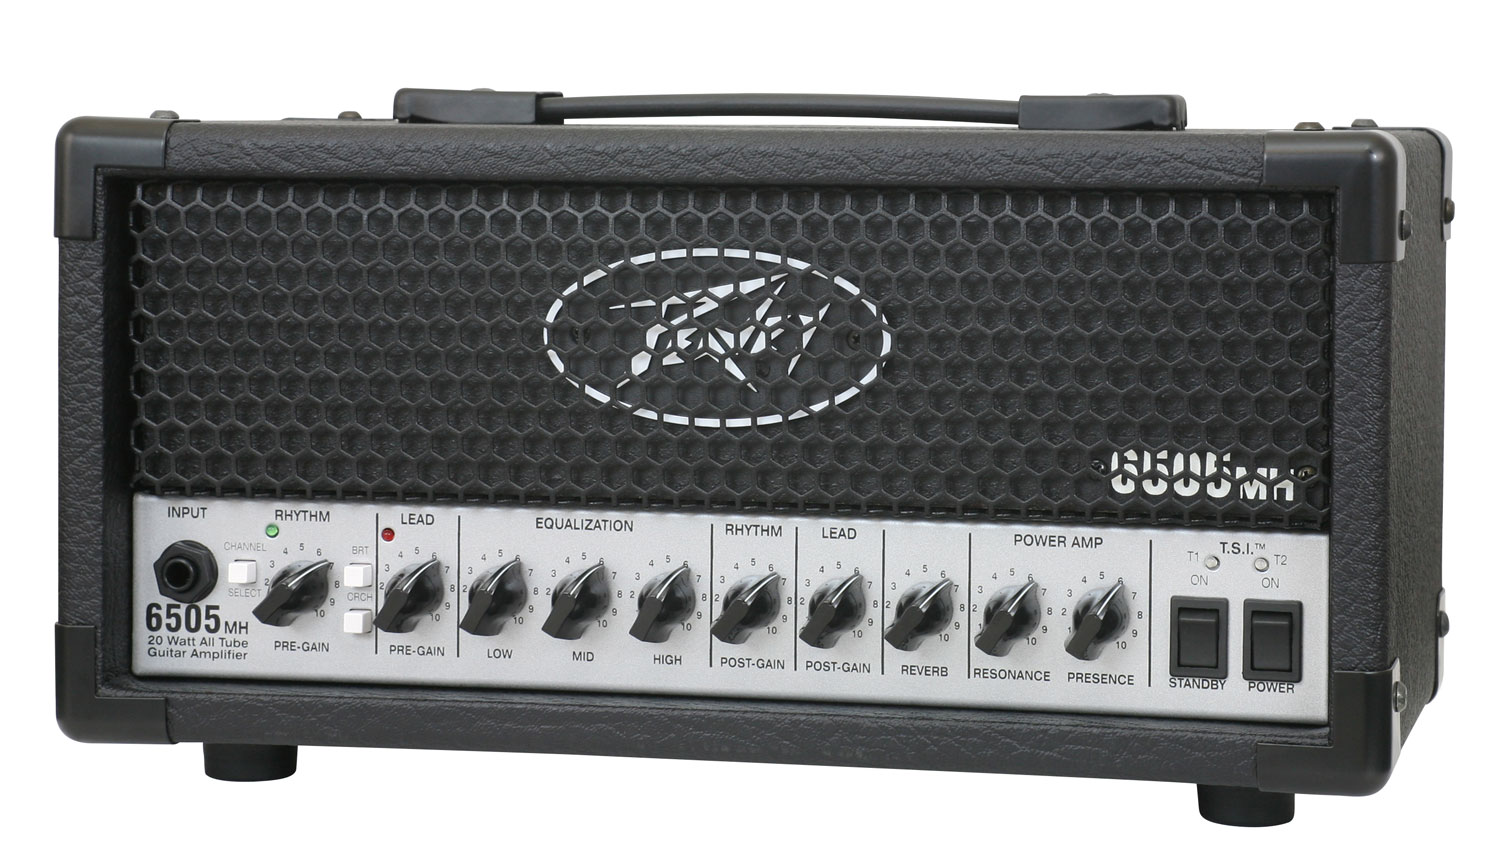 peavey 6505 mh mini head electric guitar 20 watt tube amplifier amp 3 band eq pev15 3614180 rs. Black Bedroom Furniture Sets. Home Design Ideas